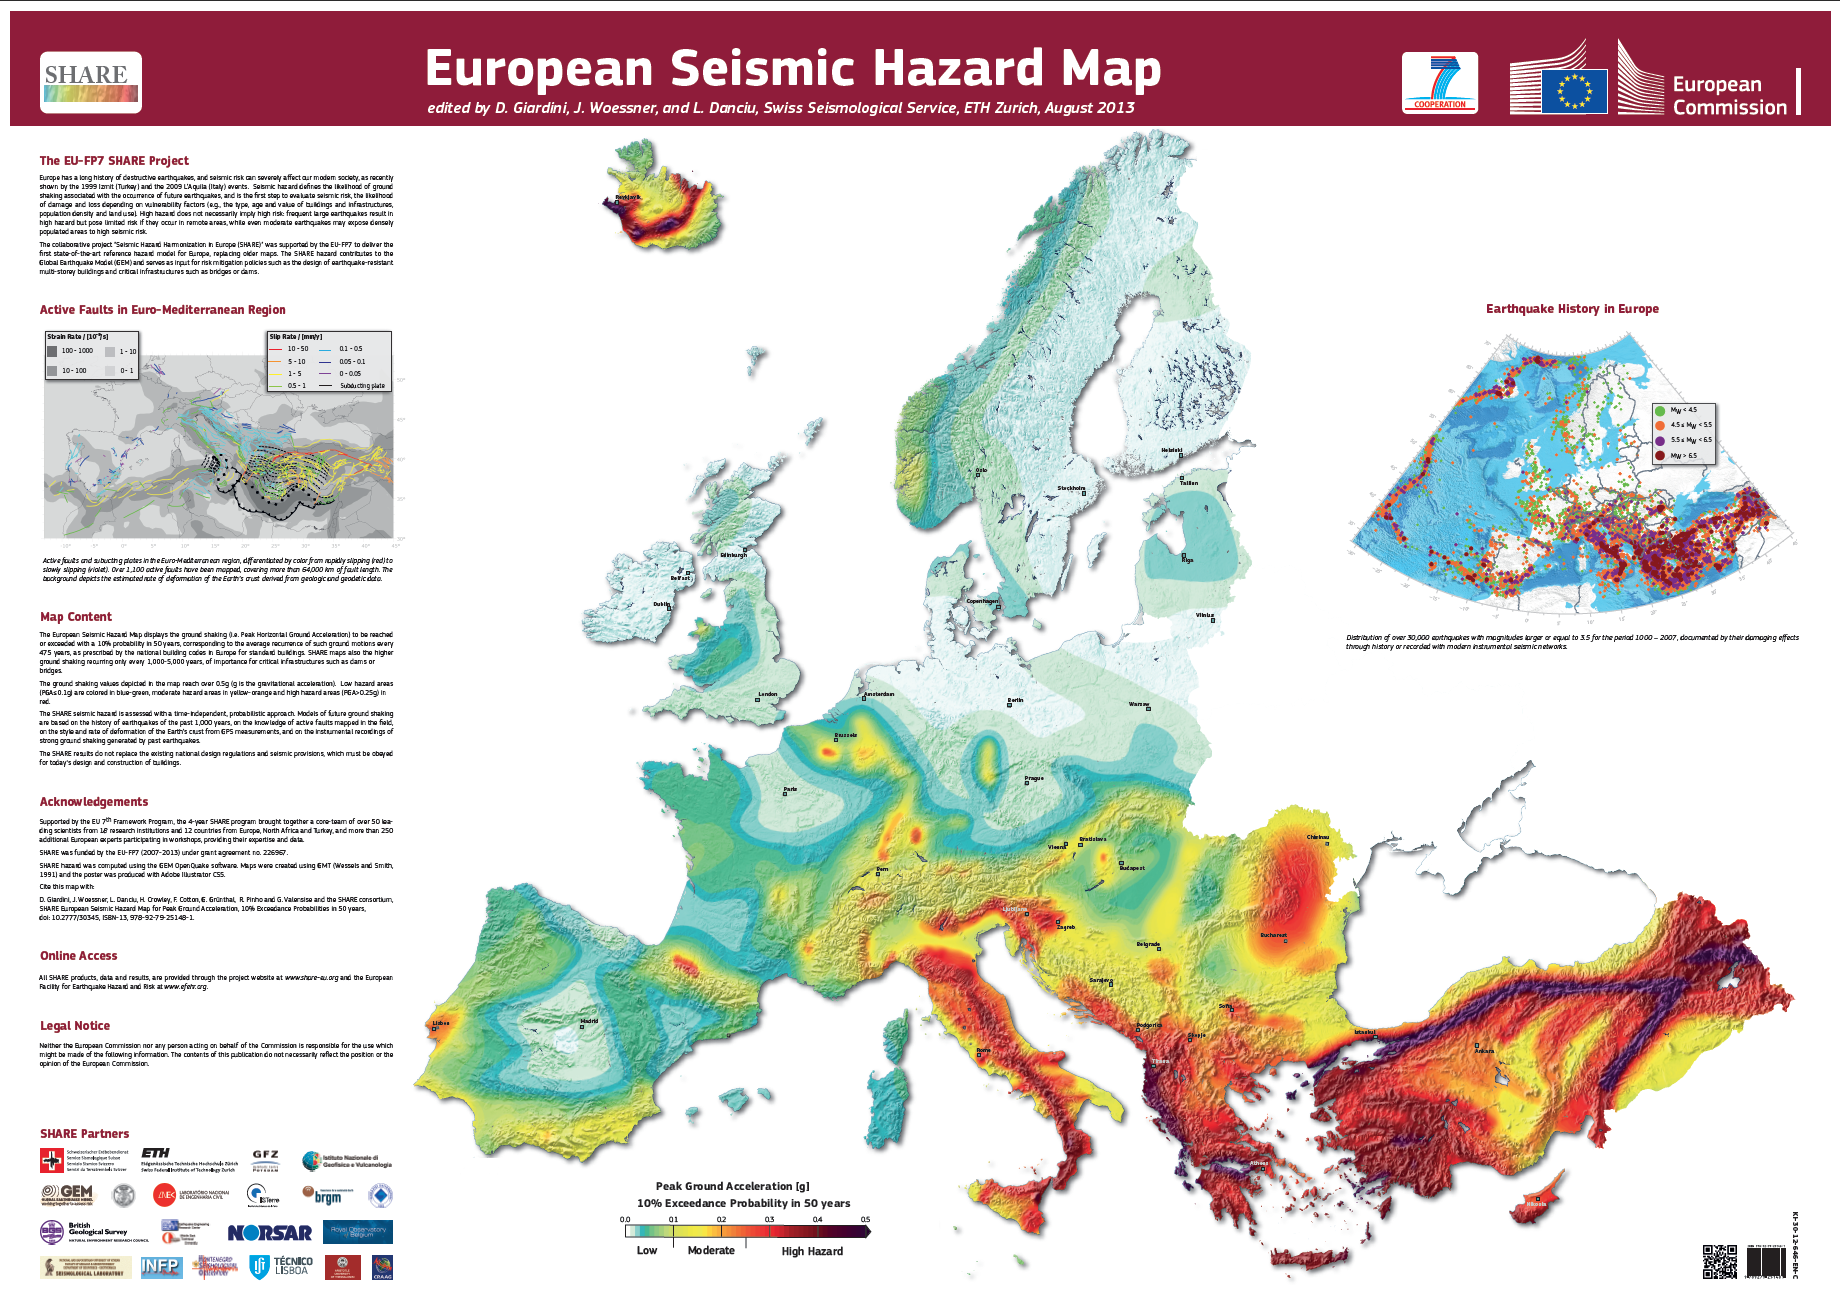 Europe seismic hazard map by SHARE #map #europe #earthquakes.